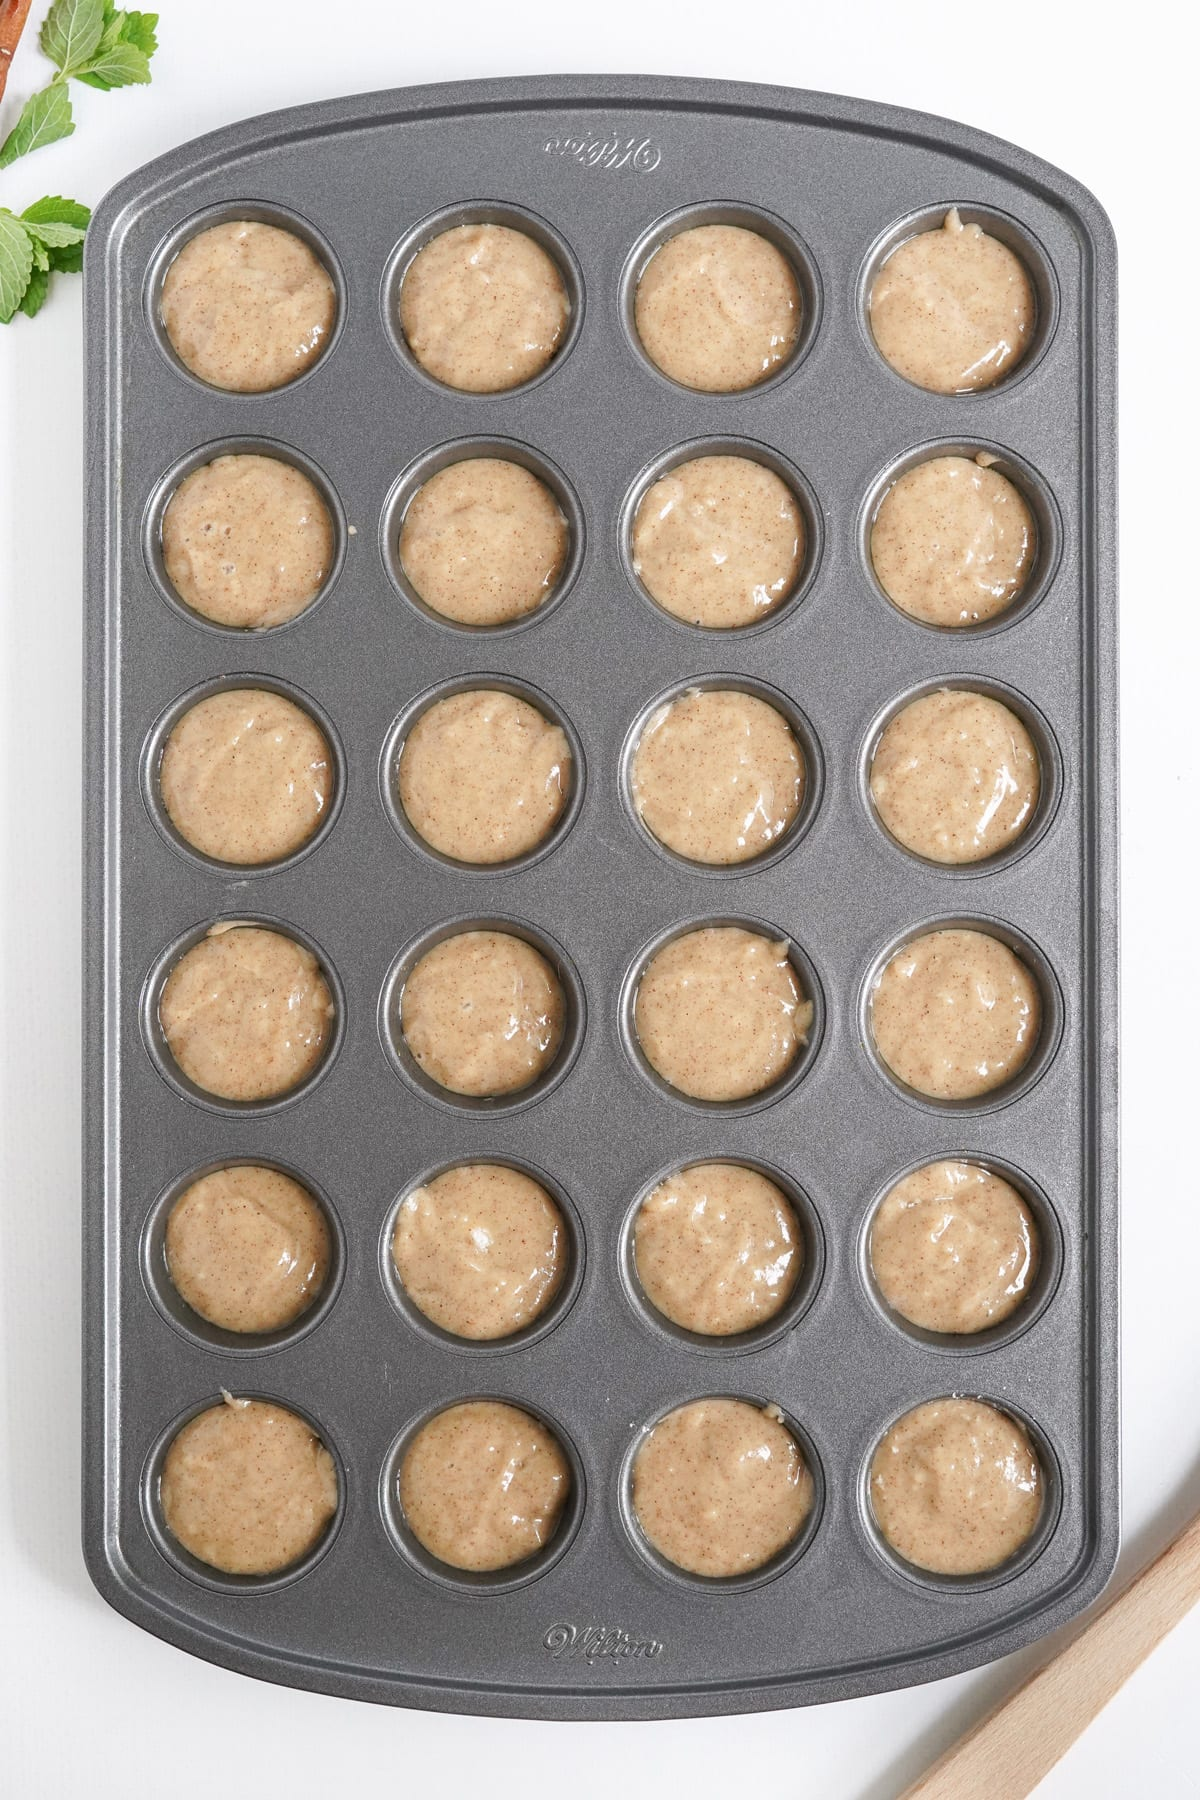 fill each section of the mini muffin pan